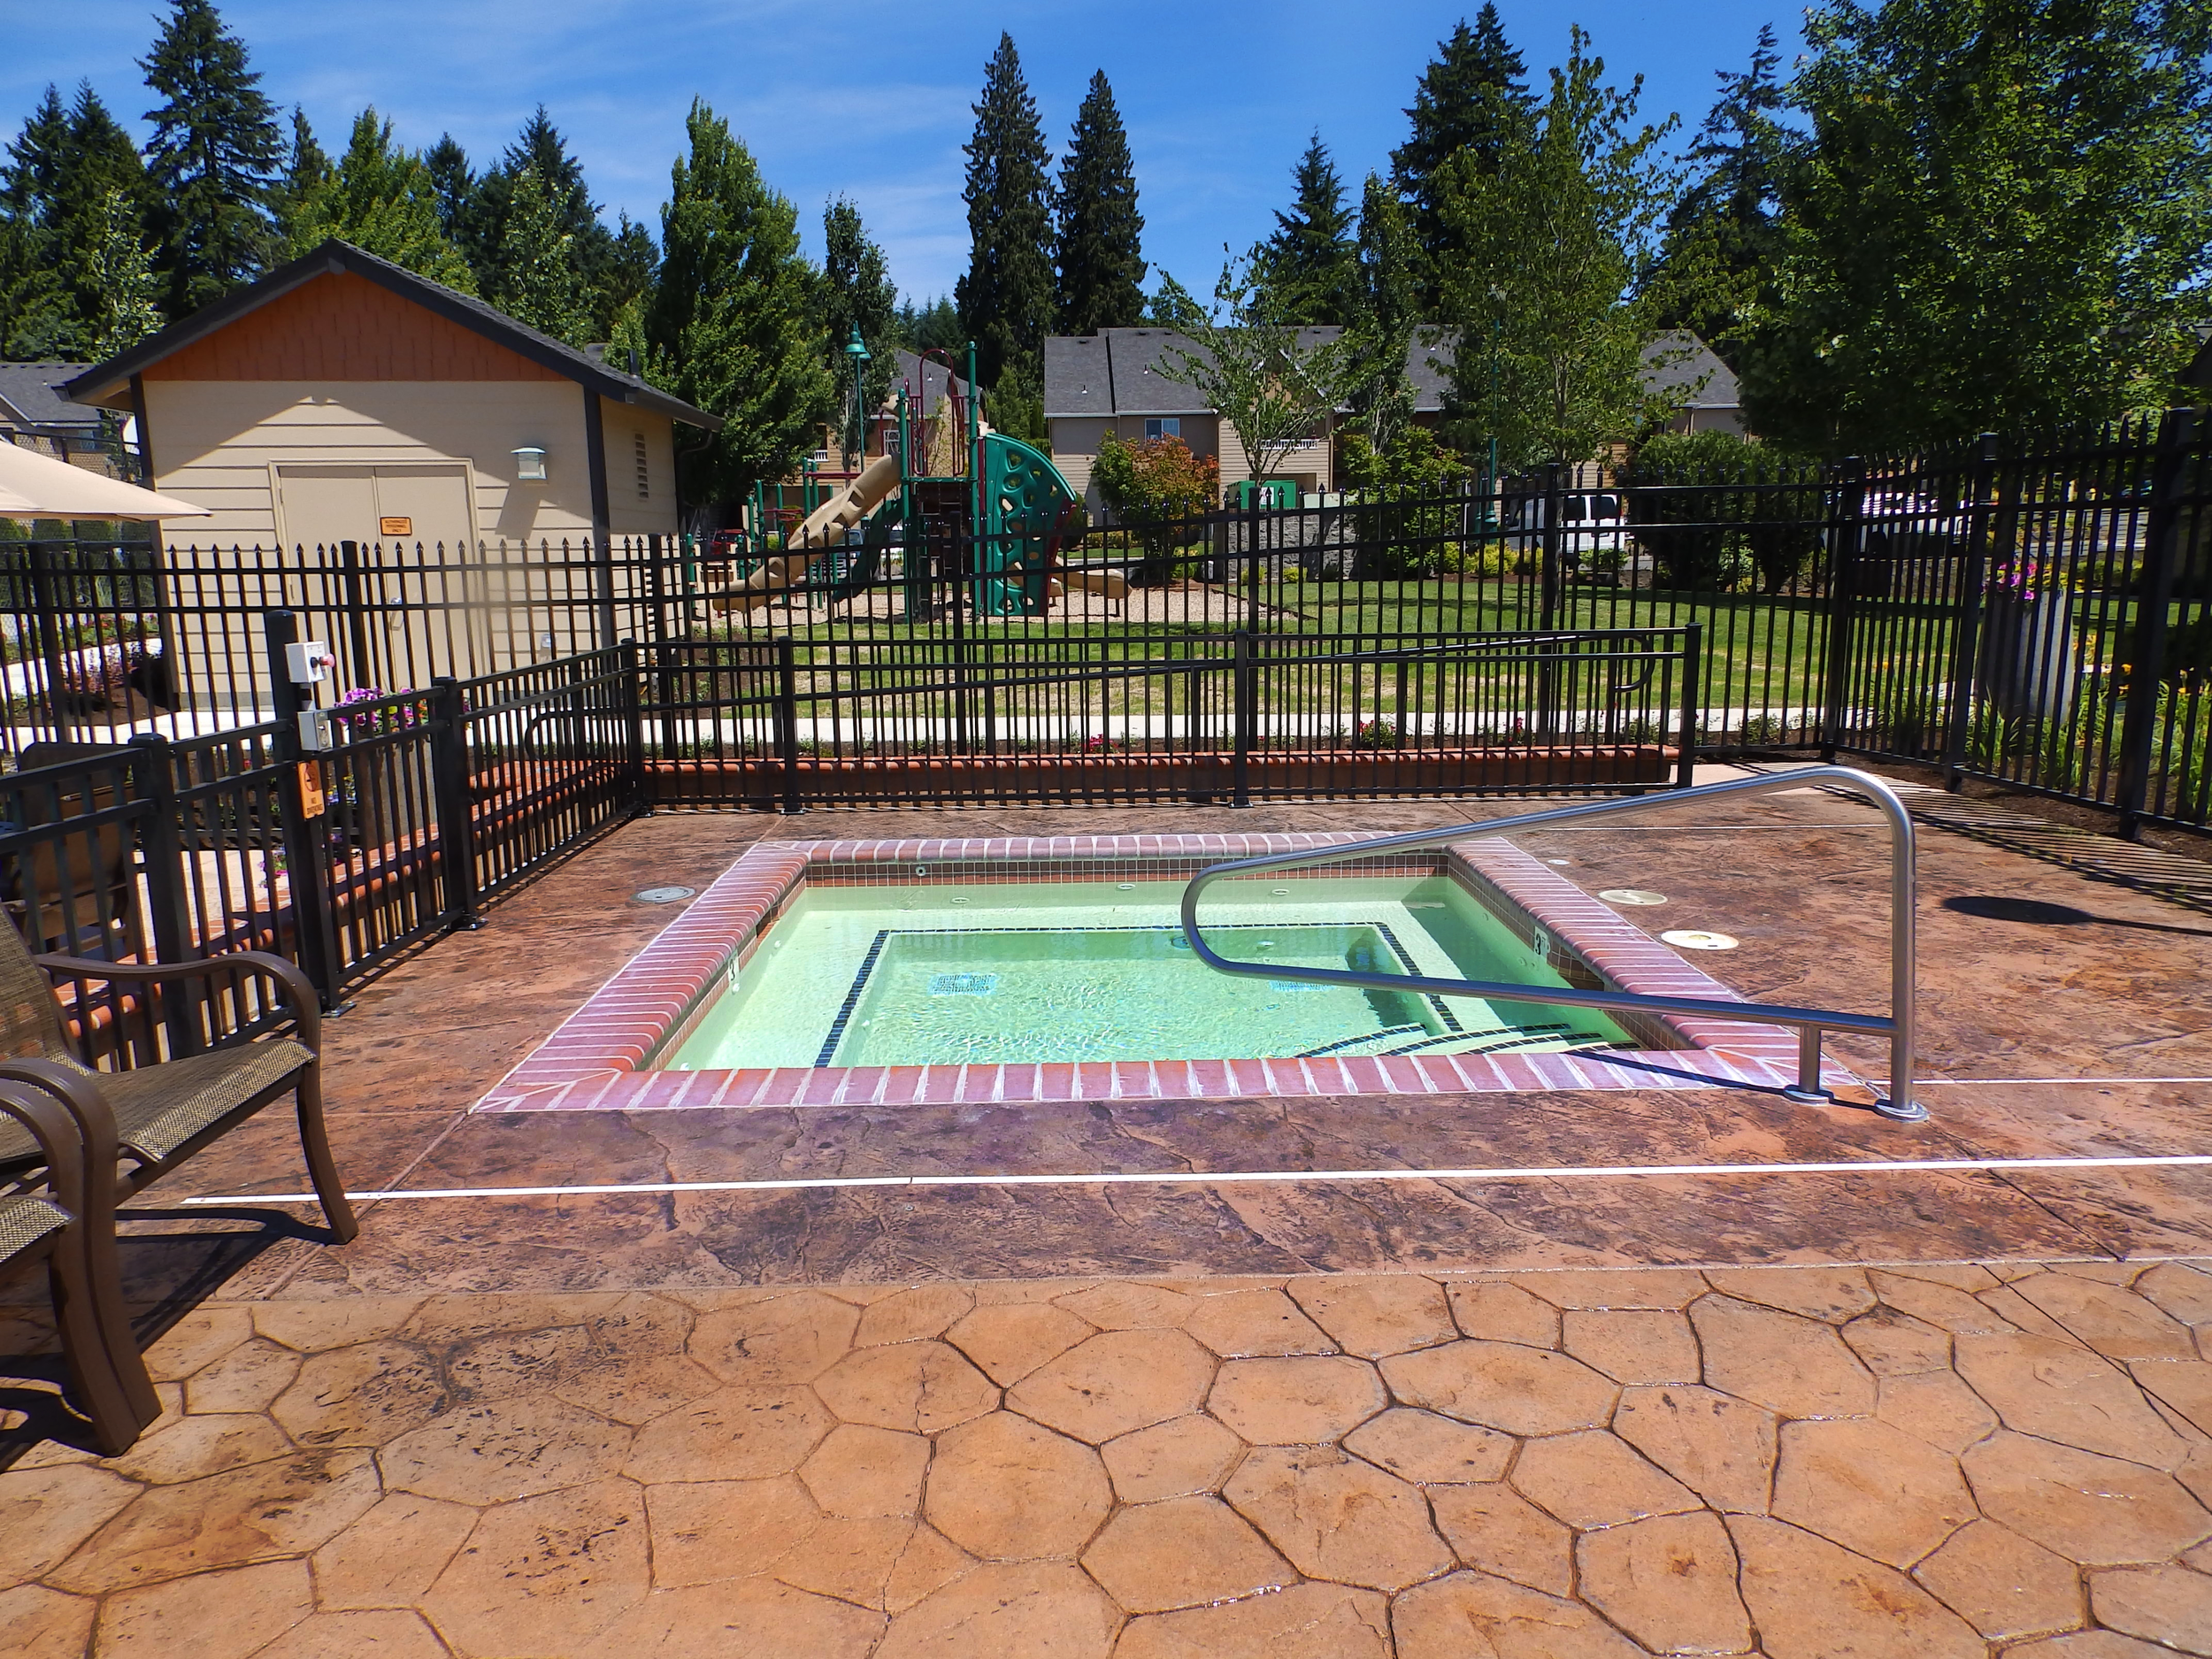 Vancouver-Washington-Mission-HIlls-luxury-apartments-pool-4.png